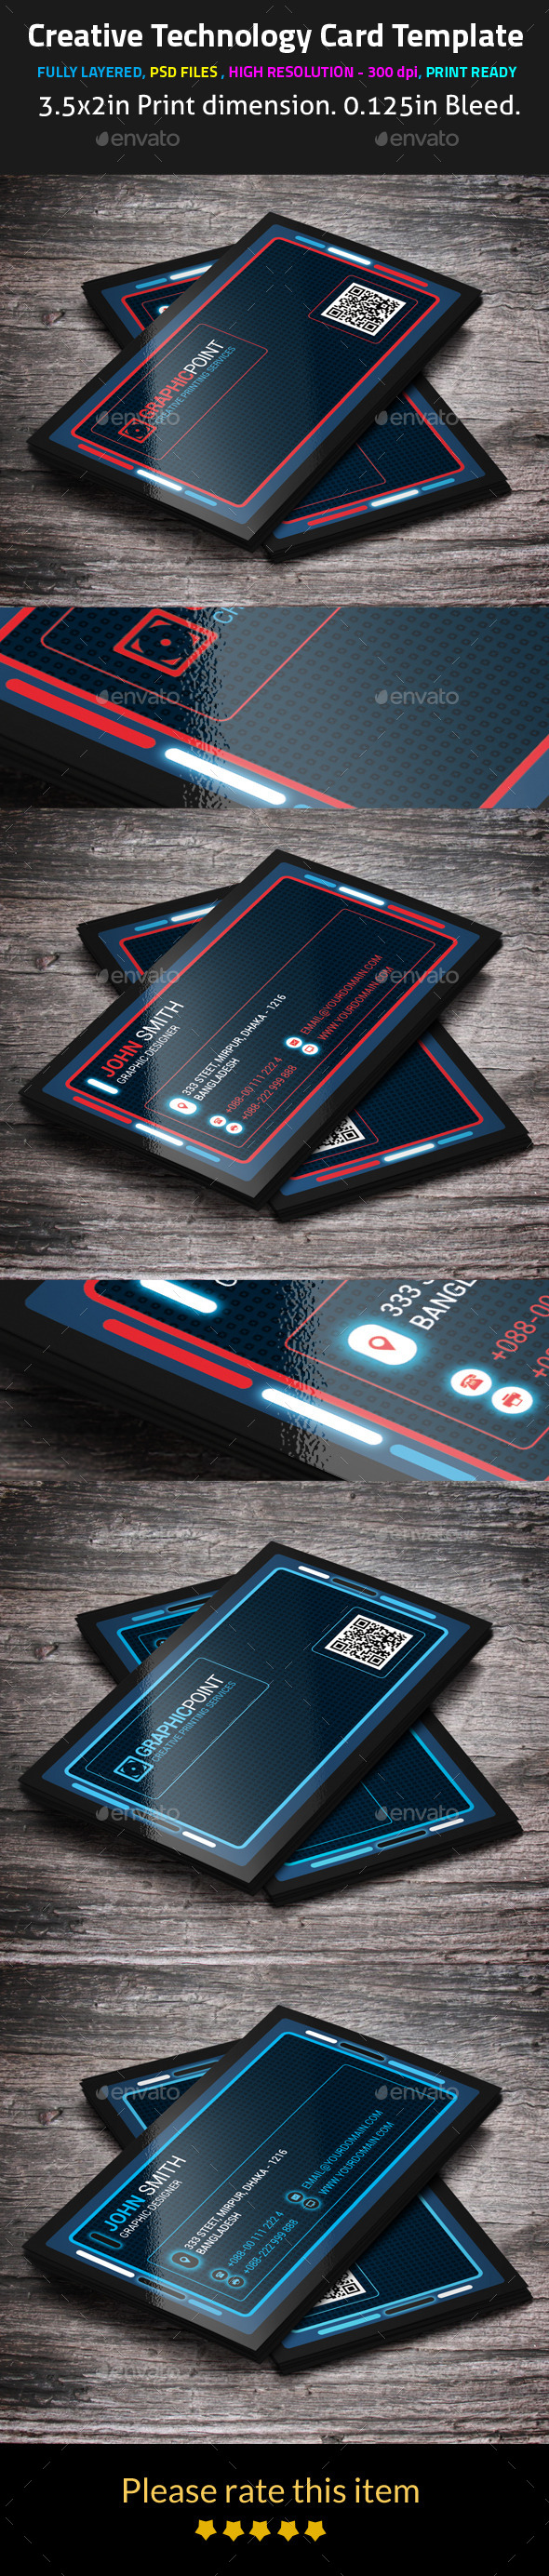 Creative Technology Card Template - Creative Business Cards